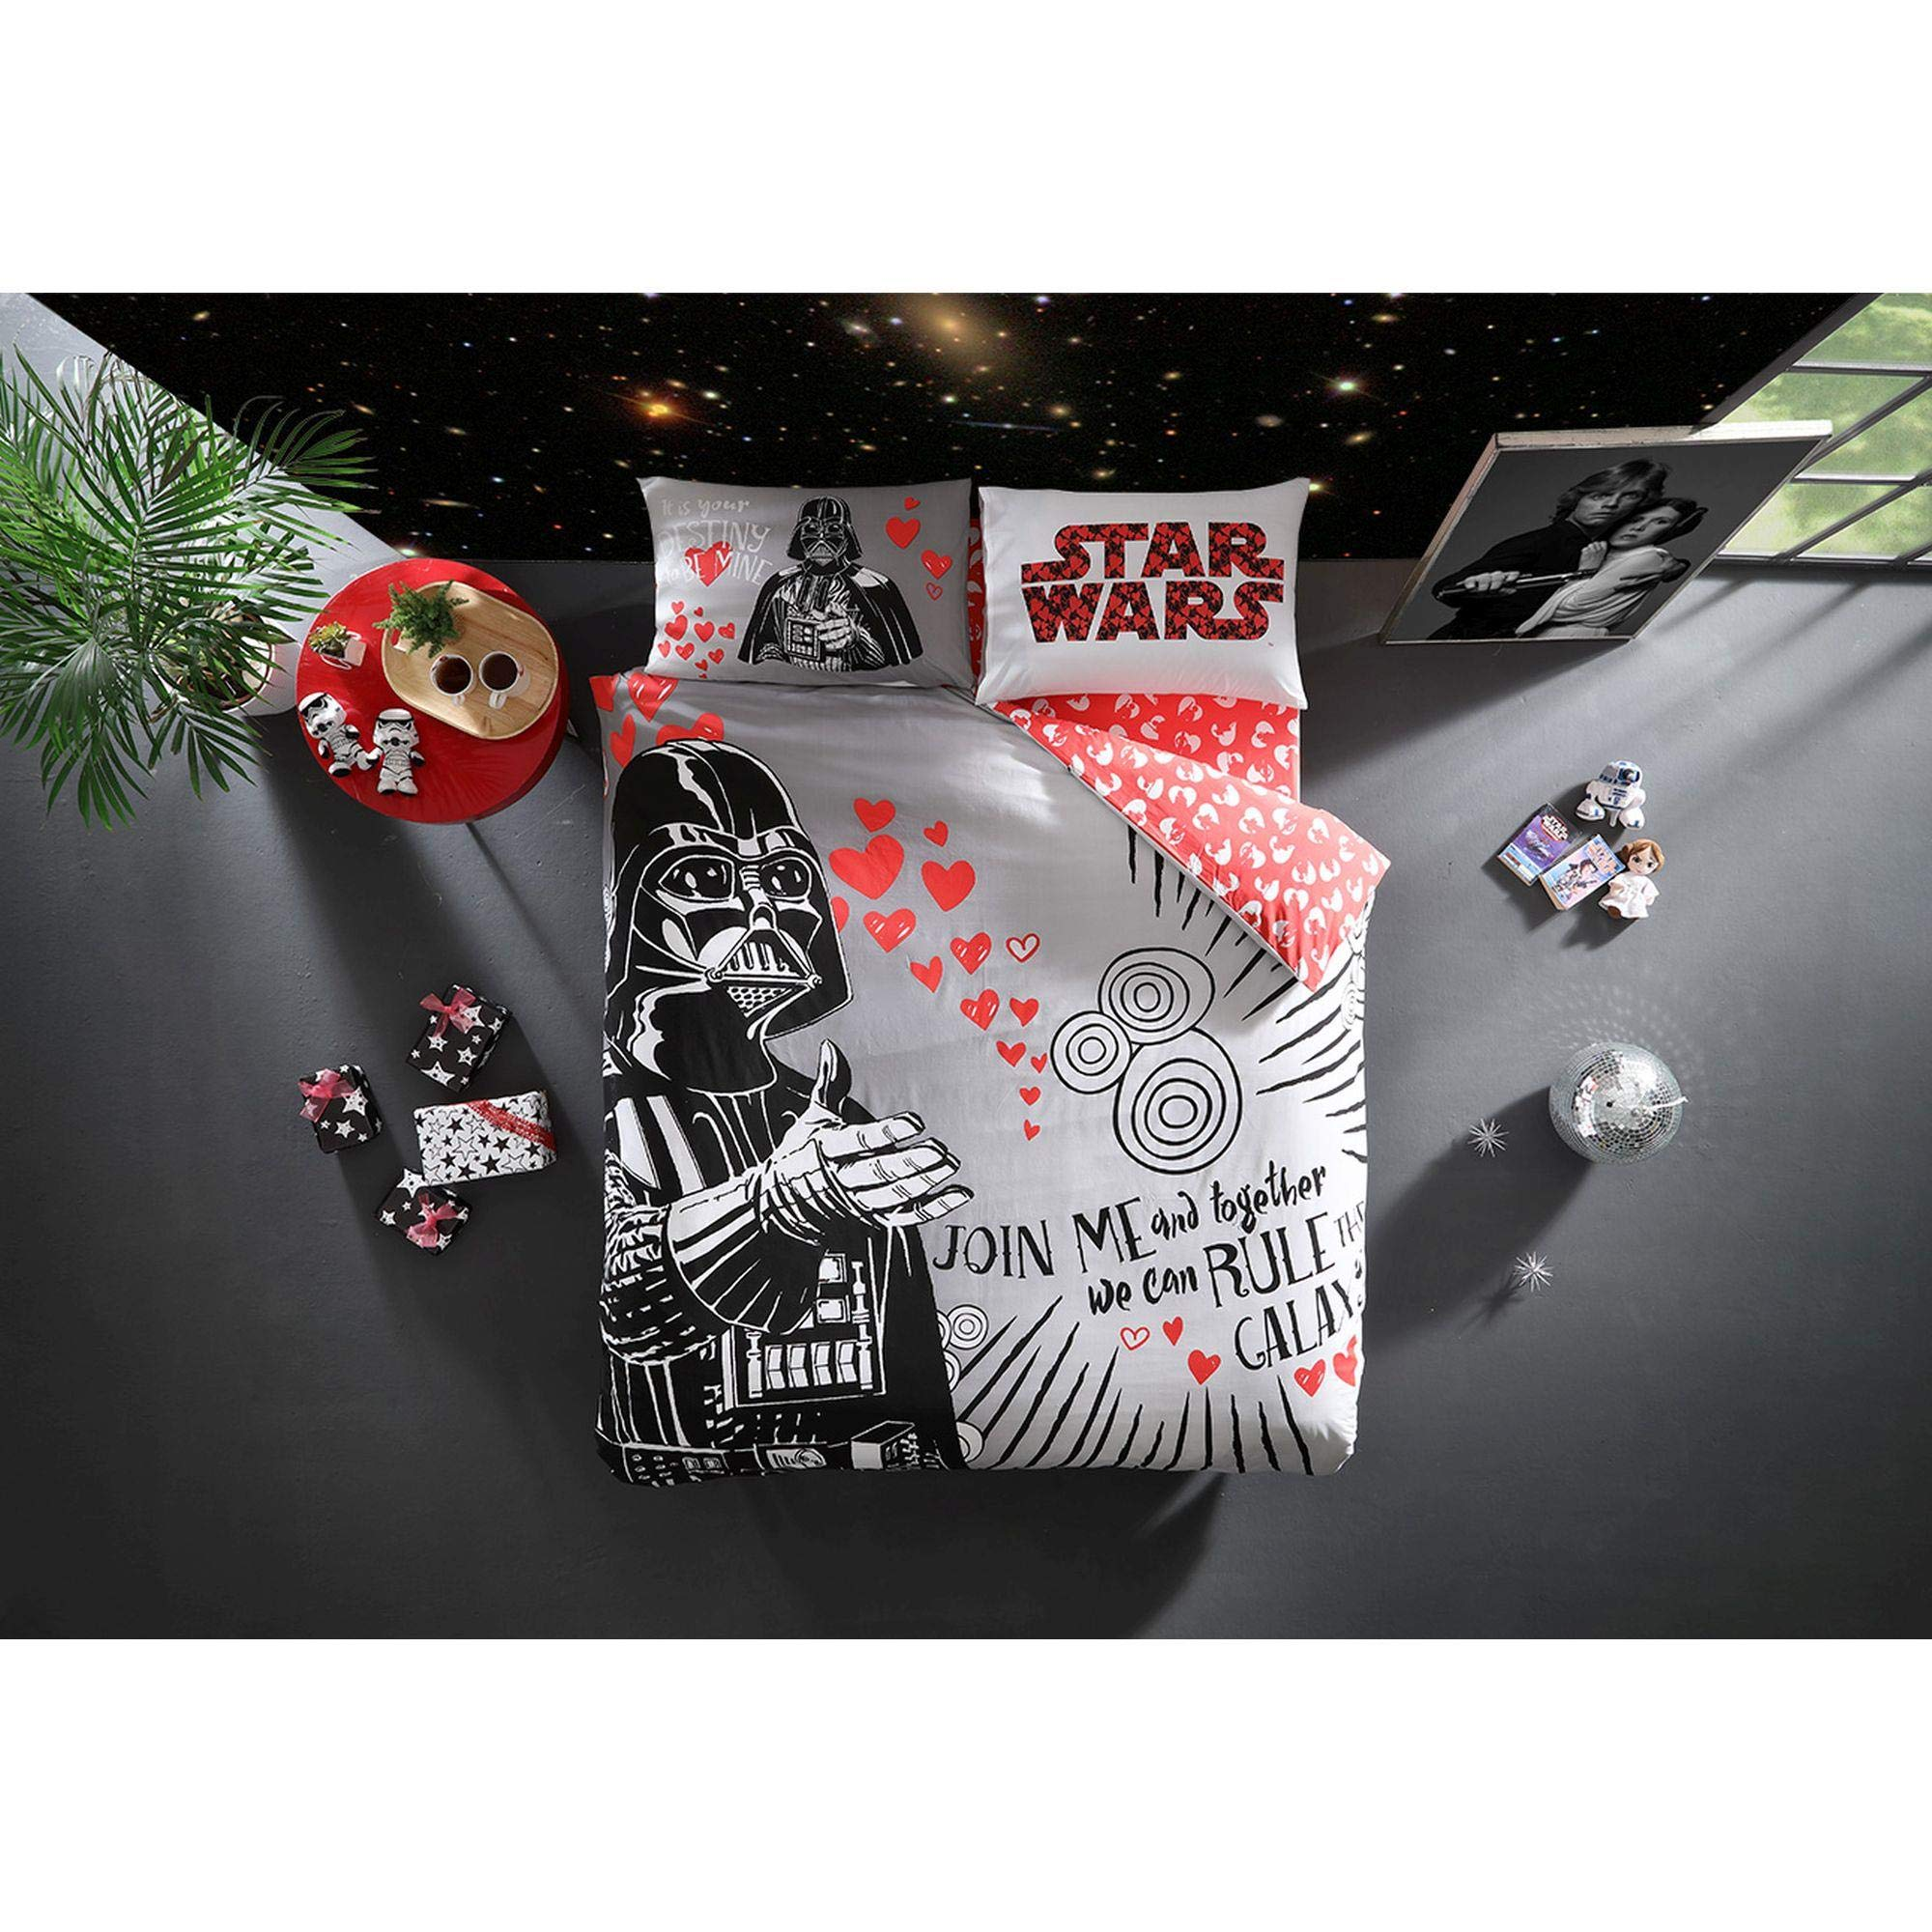 Original Licensed Star Wars Love Valentine's Day Duvet Cover Set, 100% Cotton, Double/Queen Size, 4 Pieces by TI Home (Image #1)